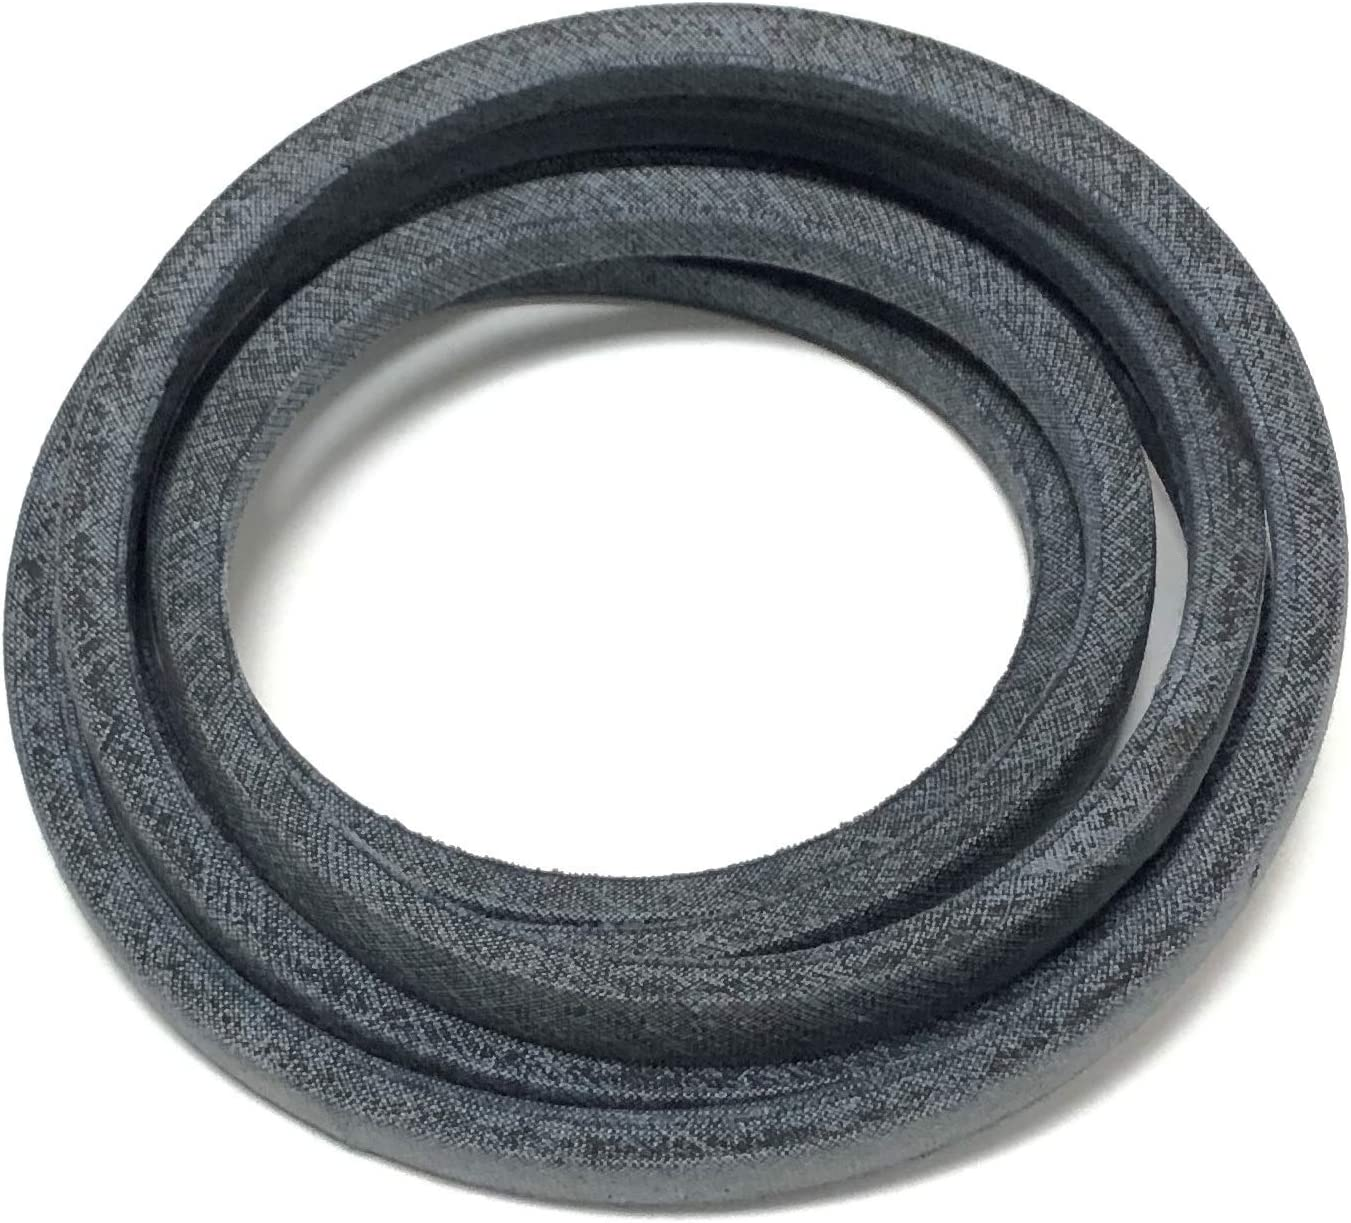 HUSQVARNA 532125907 made with Kevlar Replacement Belt